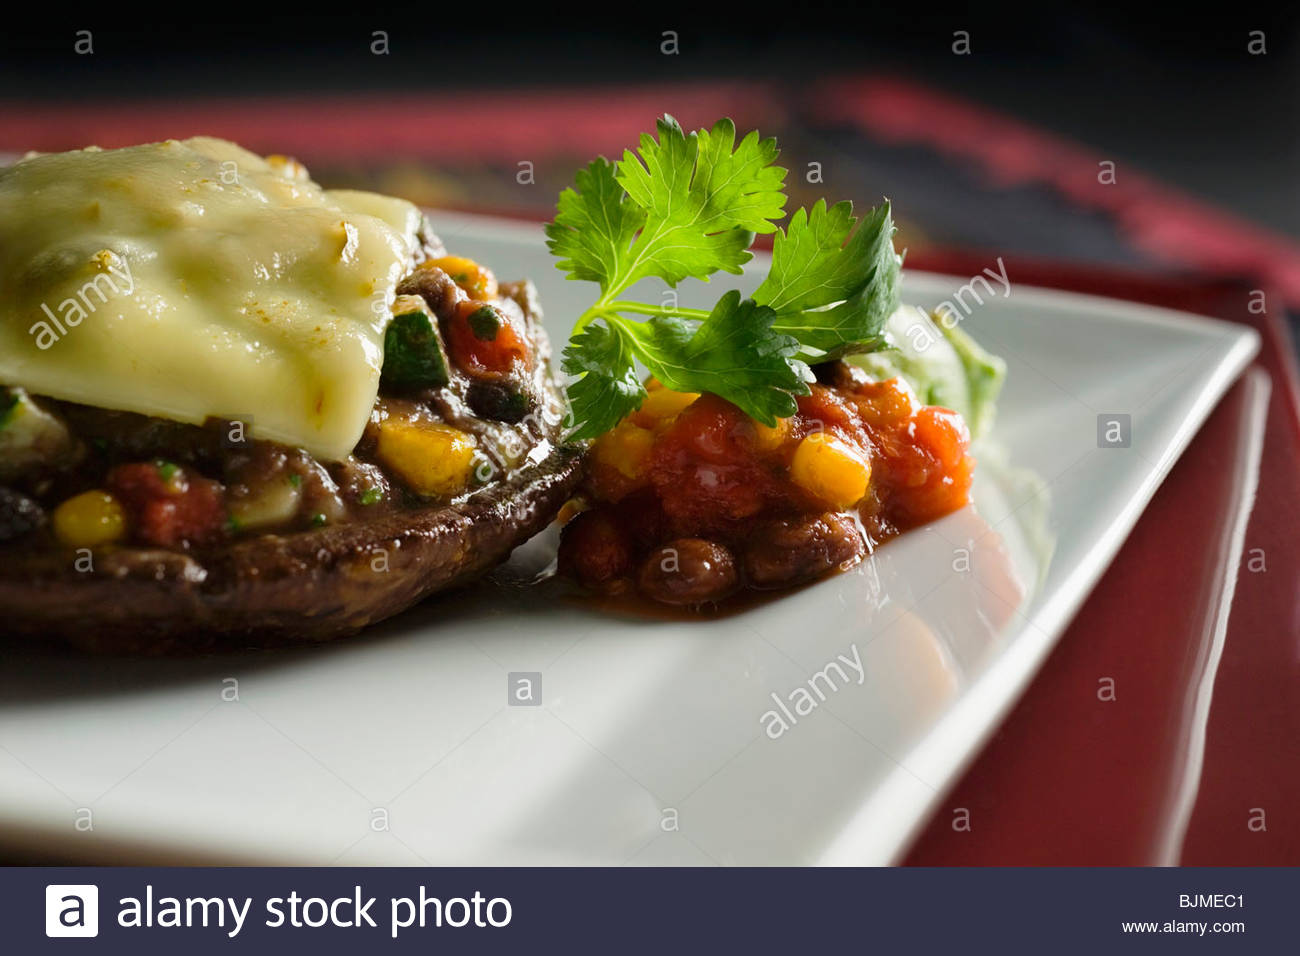 Southwestern Stuffed Portobello Mushrooms Recipes — Dishmaps